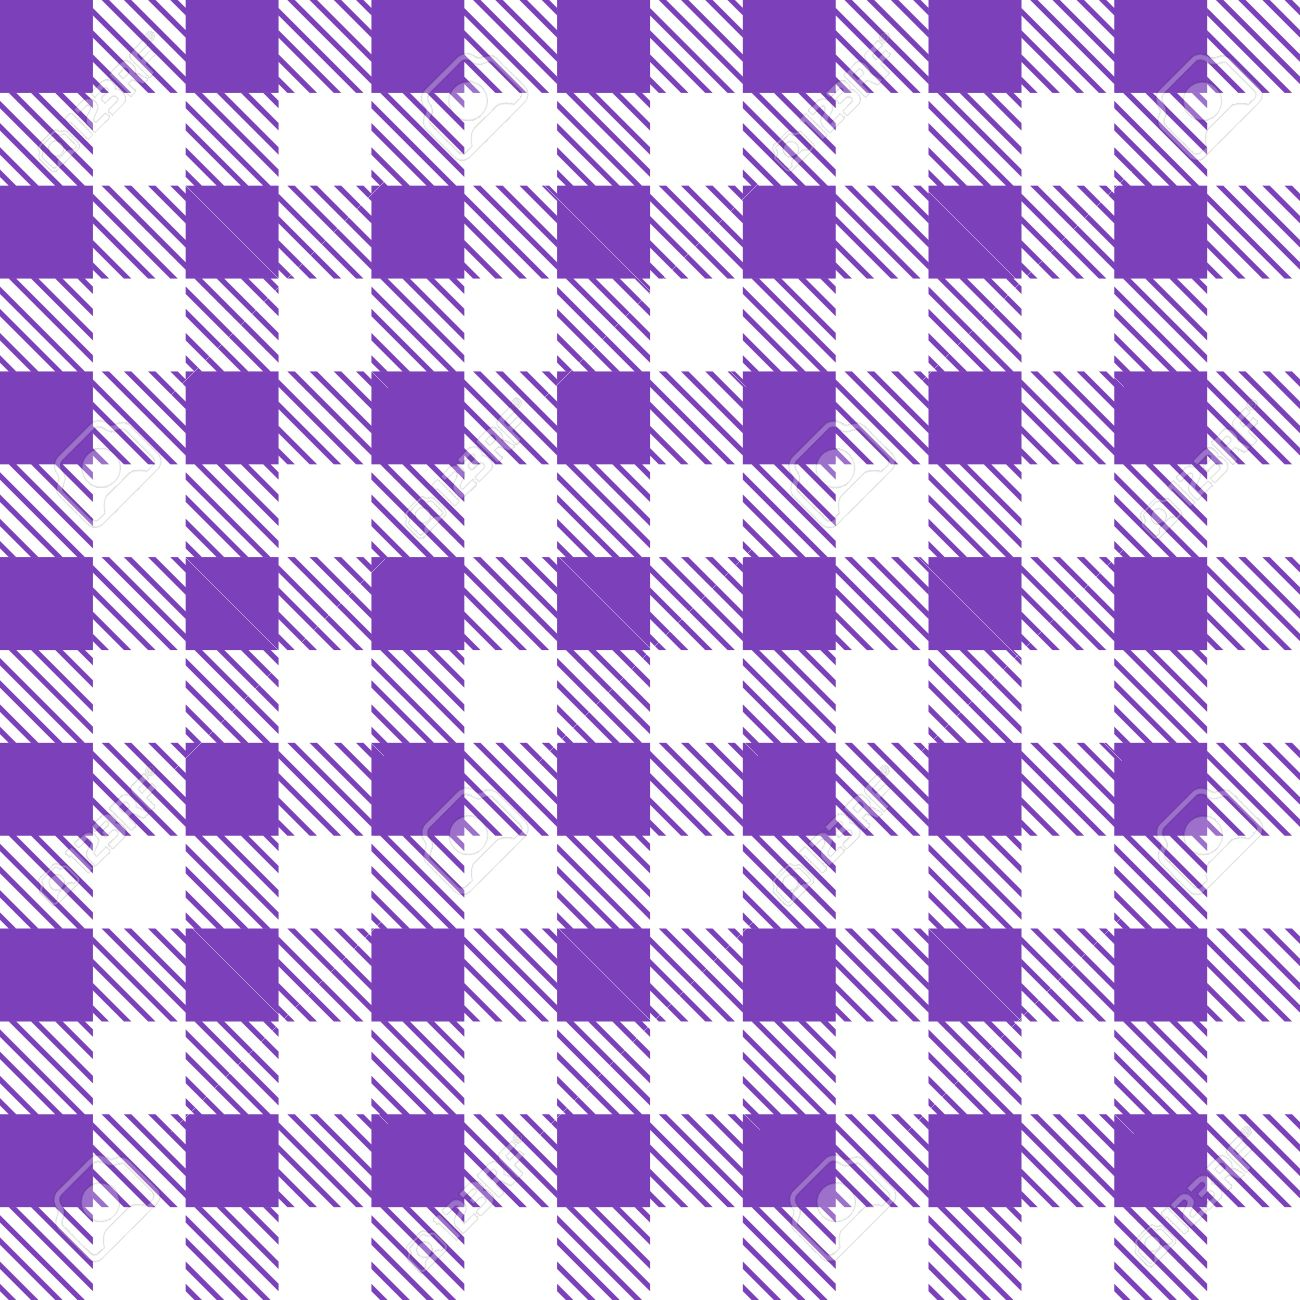 Amazing Tartan Plaid Seamless Pattern. Kitchen Checkered Purple Tablecloth Fabric  Background. Stock Vector   50643714